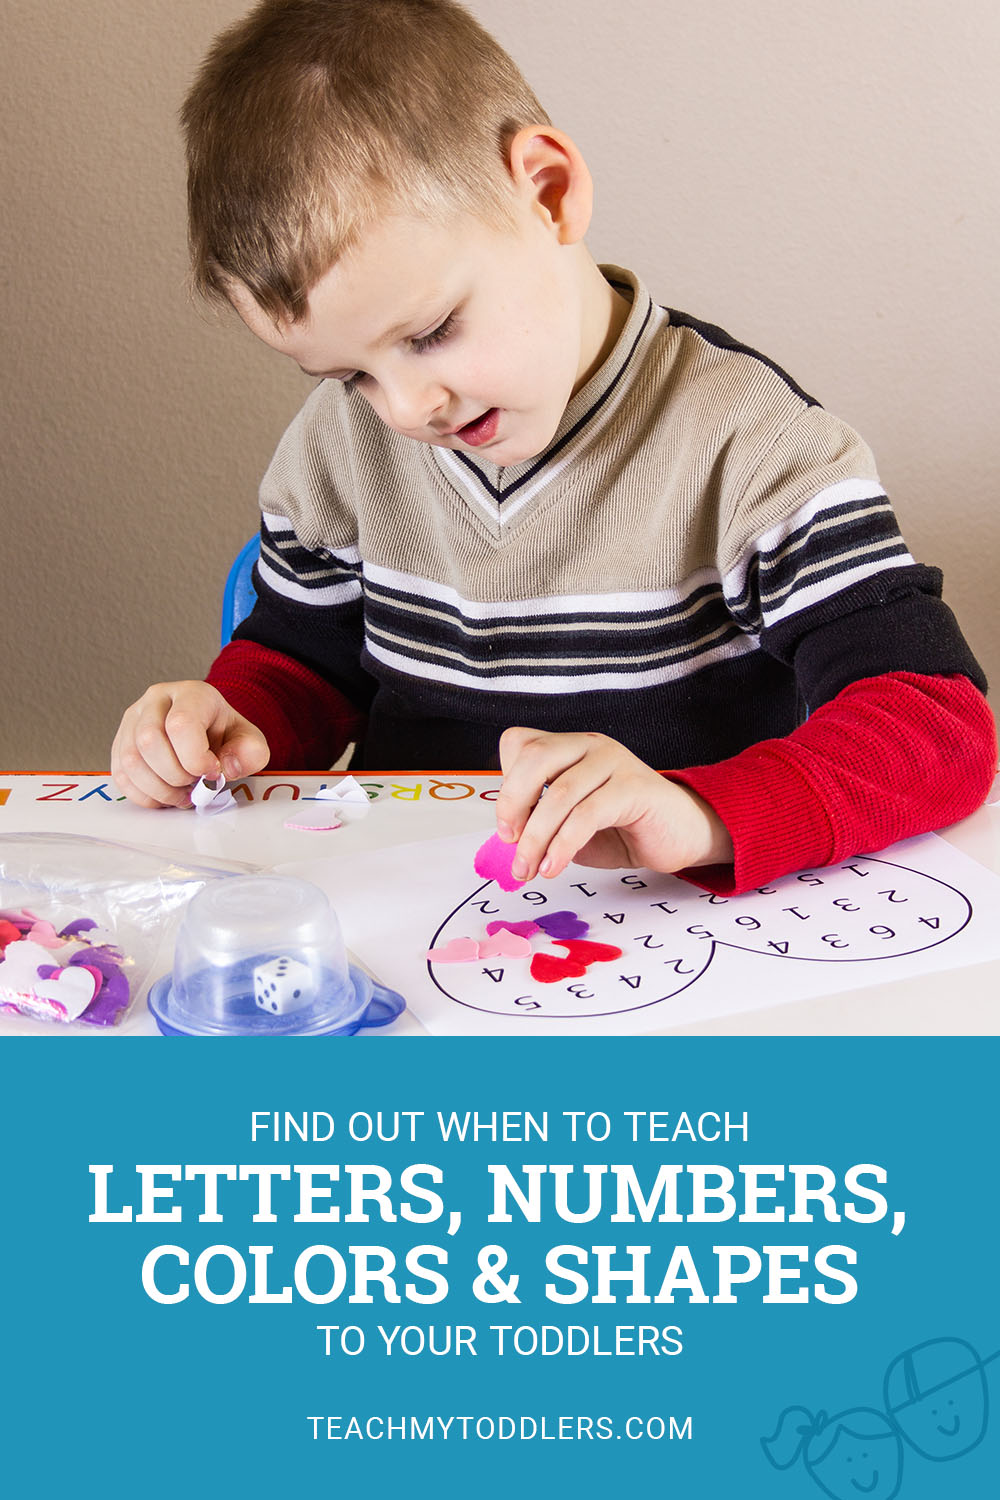 Find out when to teach letters, numbers, colors and shapes to toddlers